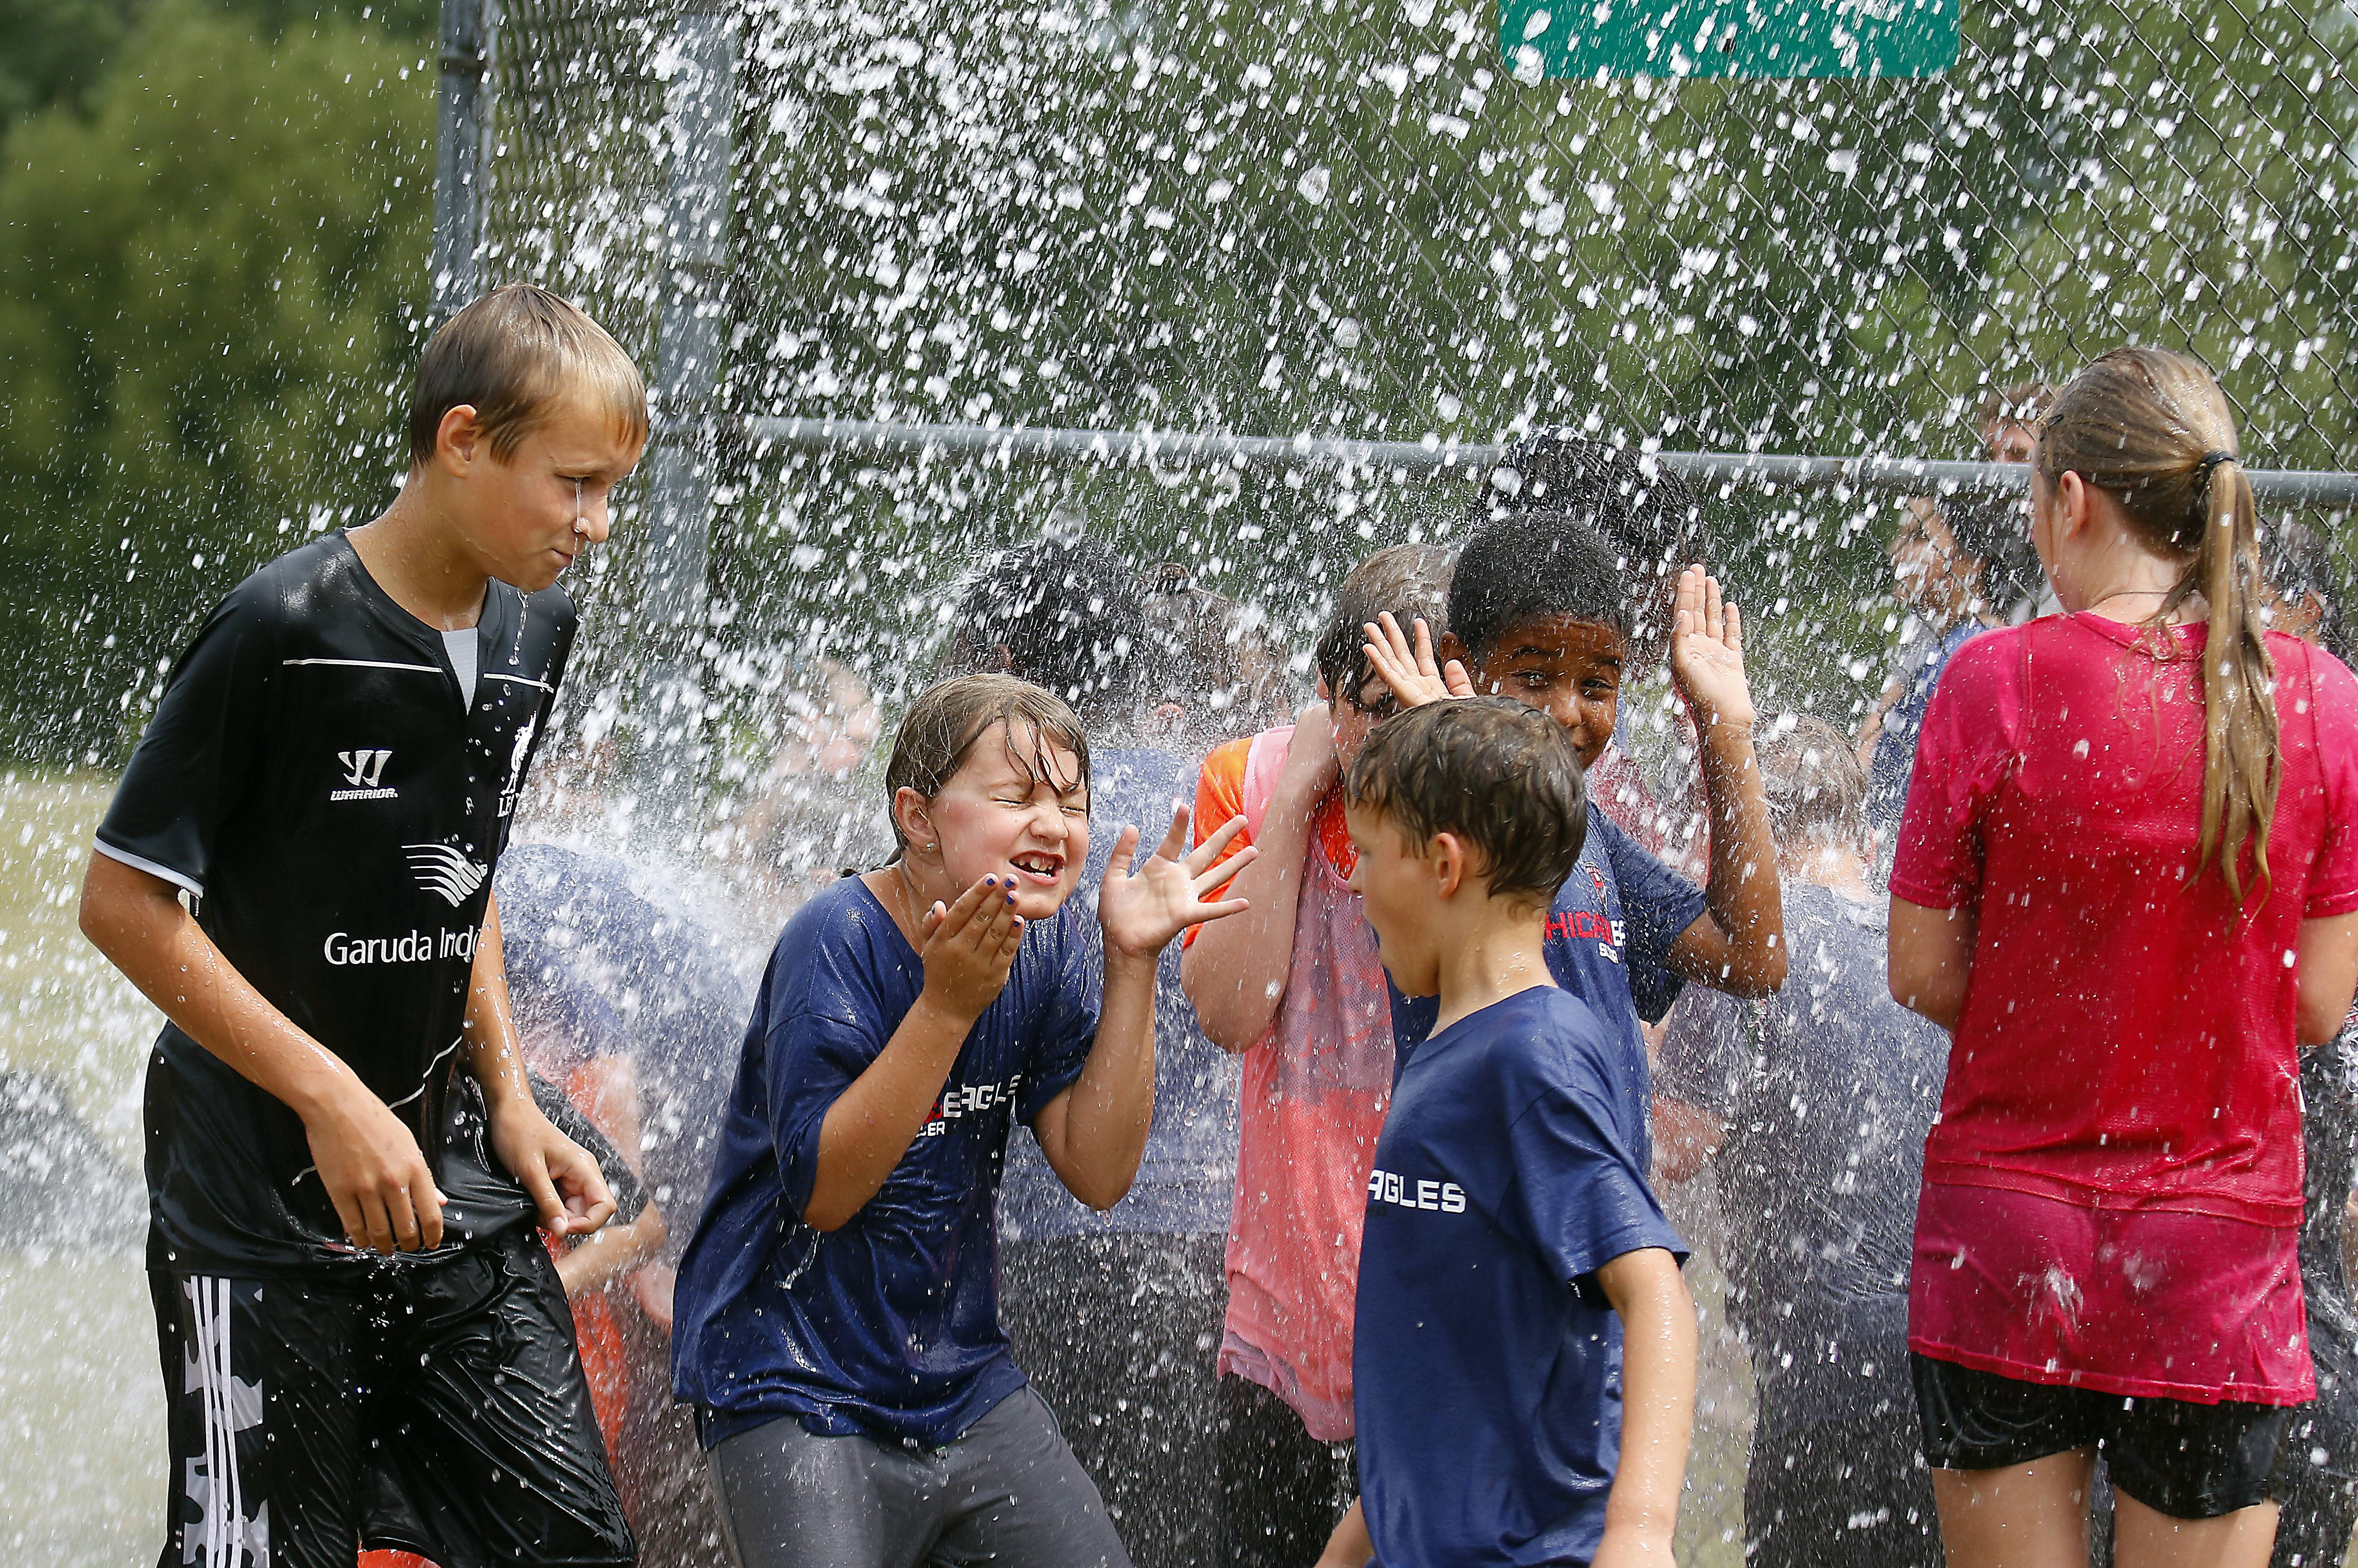 Kids at Chicago Eagles Soccer Camp at Dundee Middle School are sprayed by the Rutland-Dundee Township Fire Department, which came out to hose them down because of the heat.